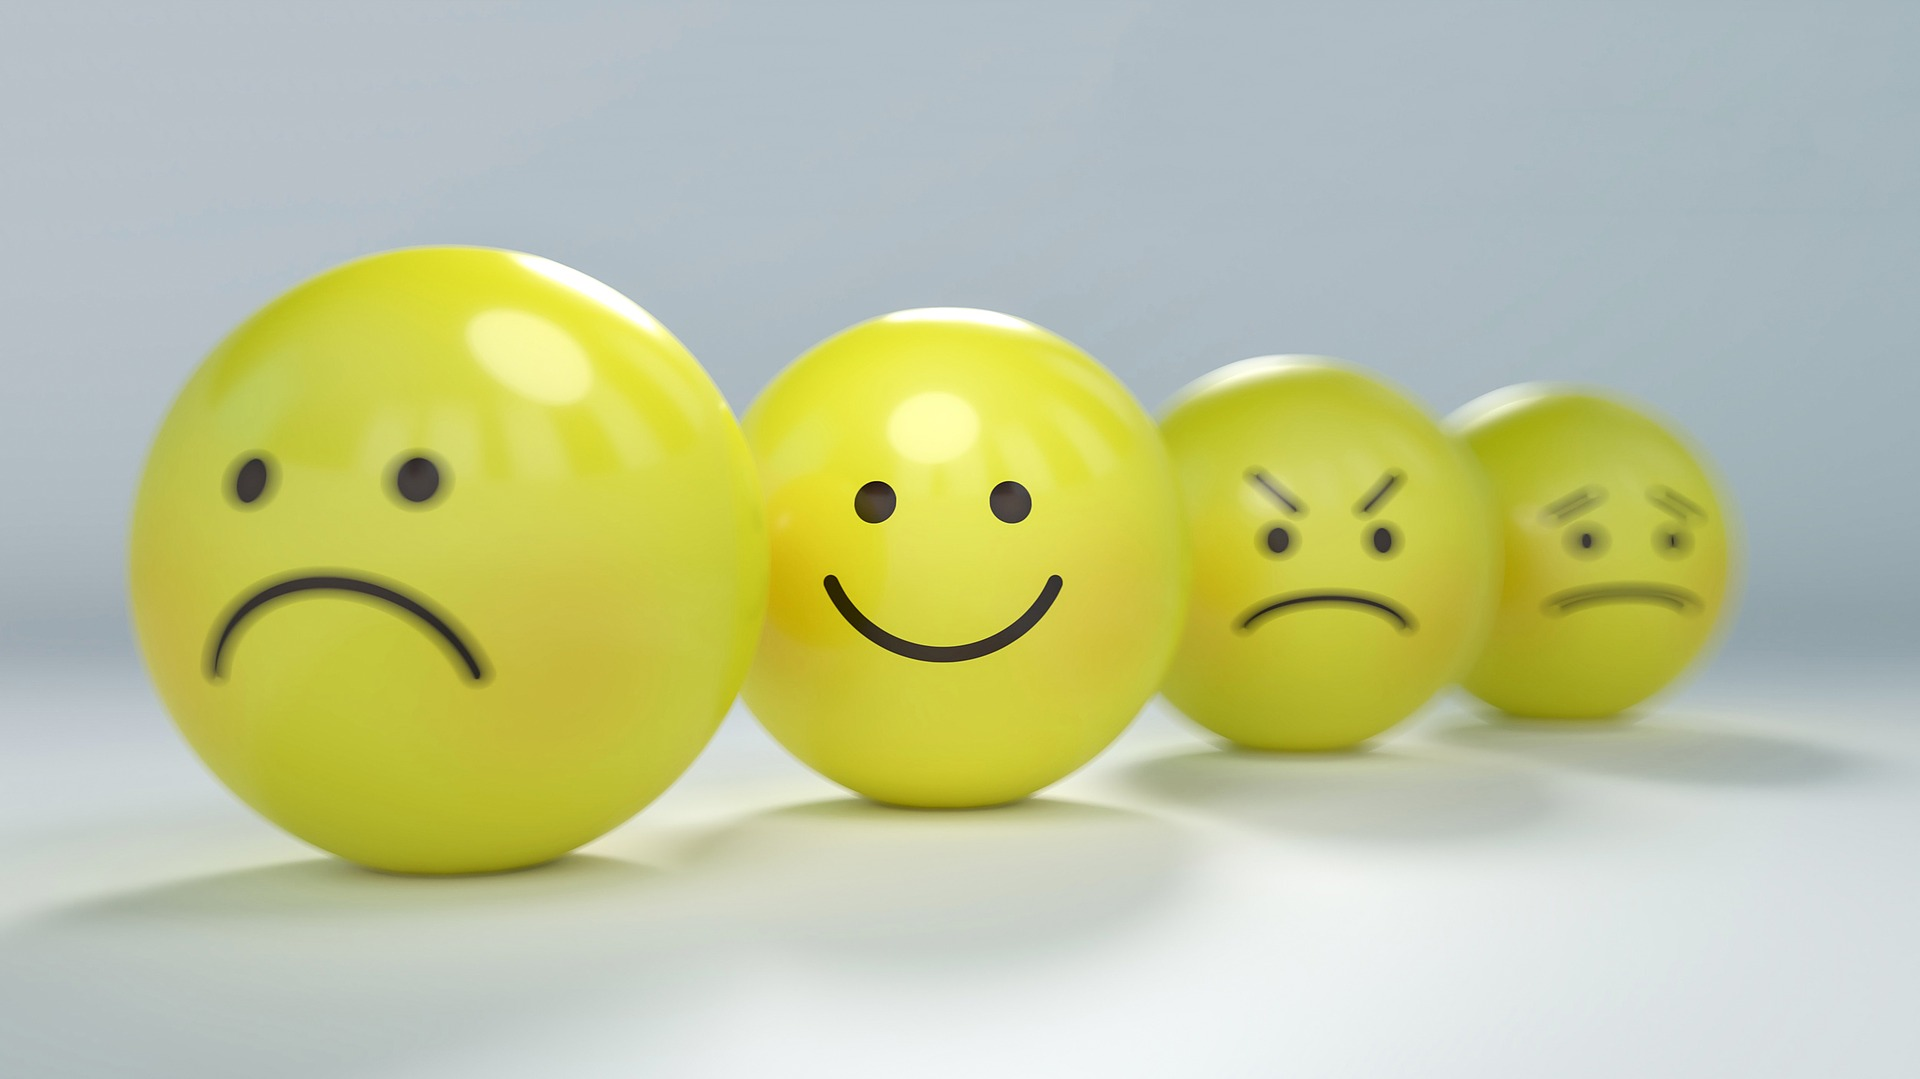 Four yellow smiley face balls in a row showing different emotions